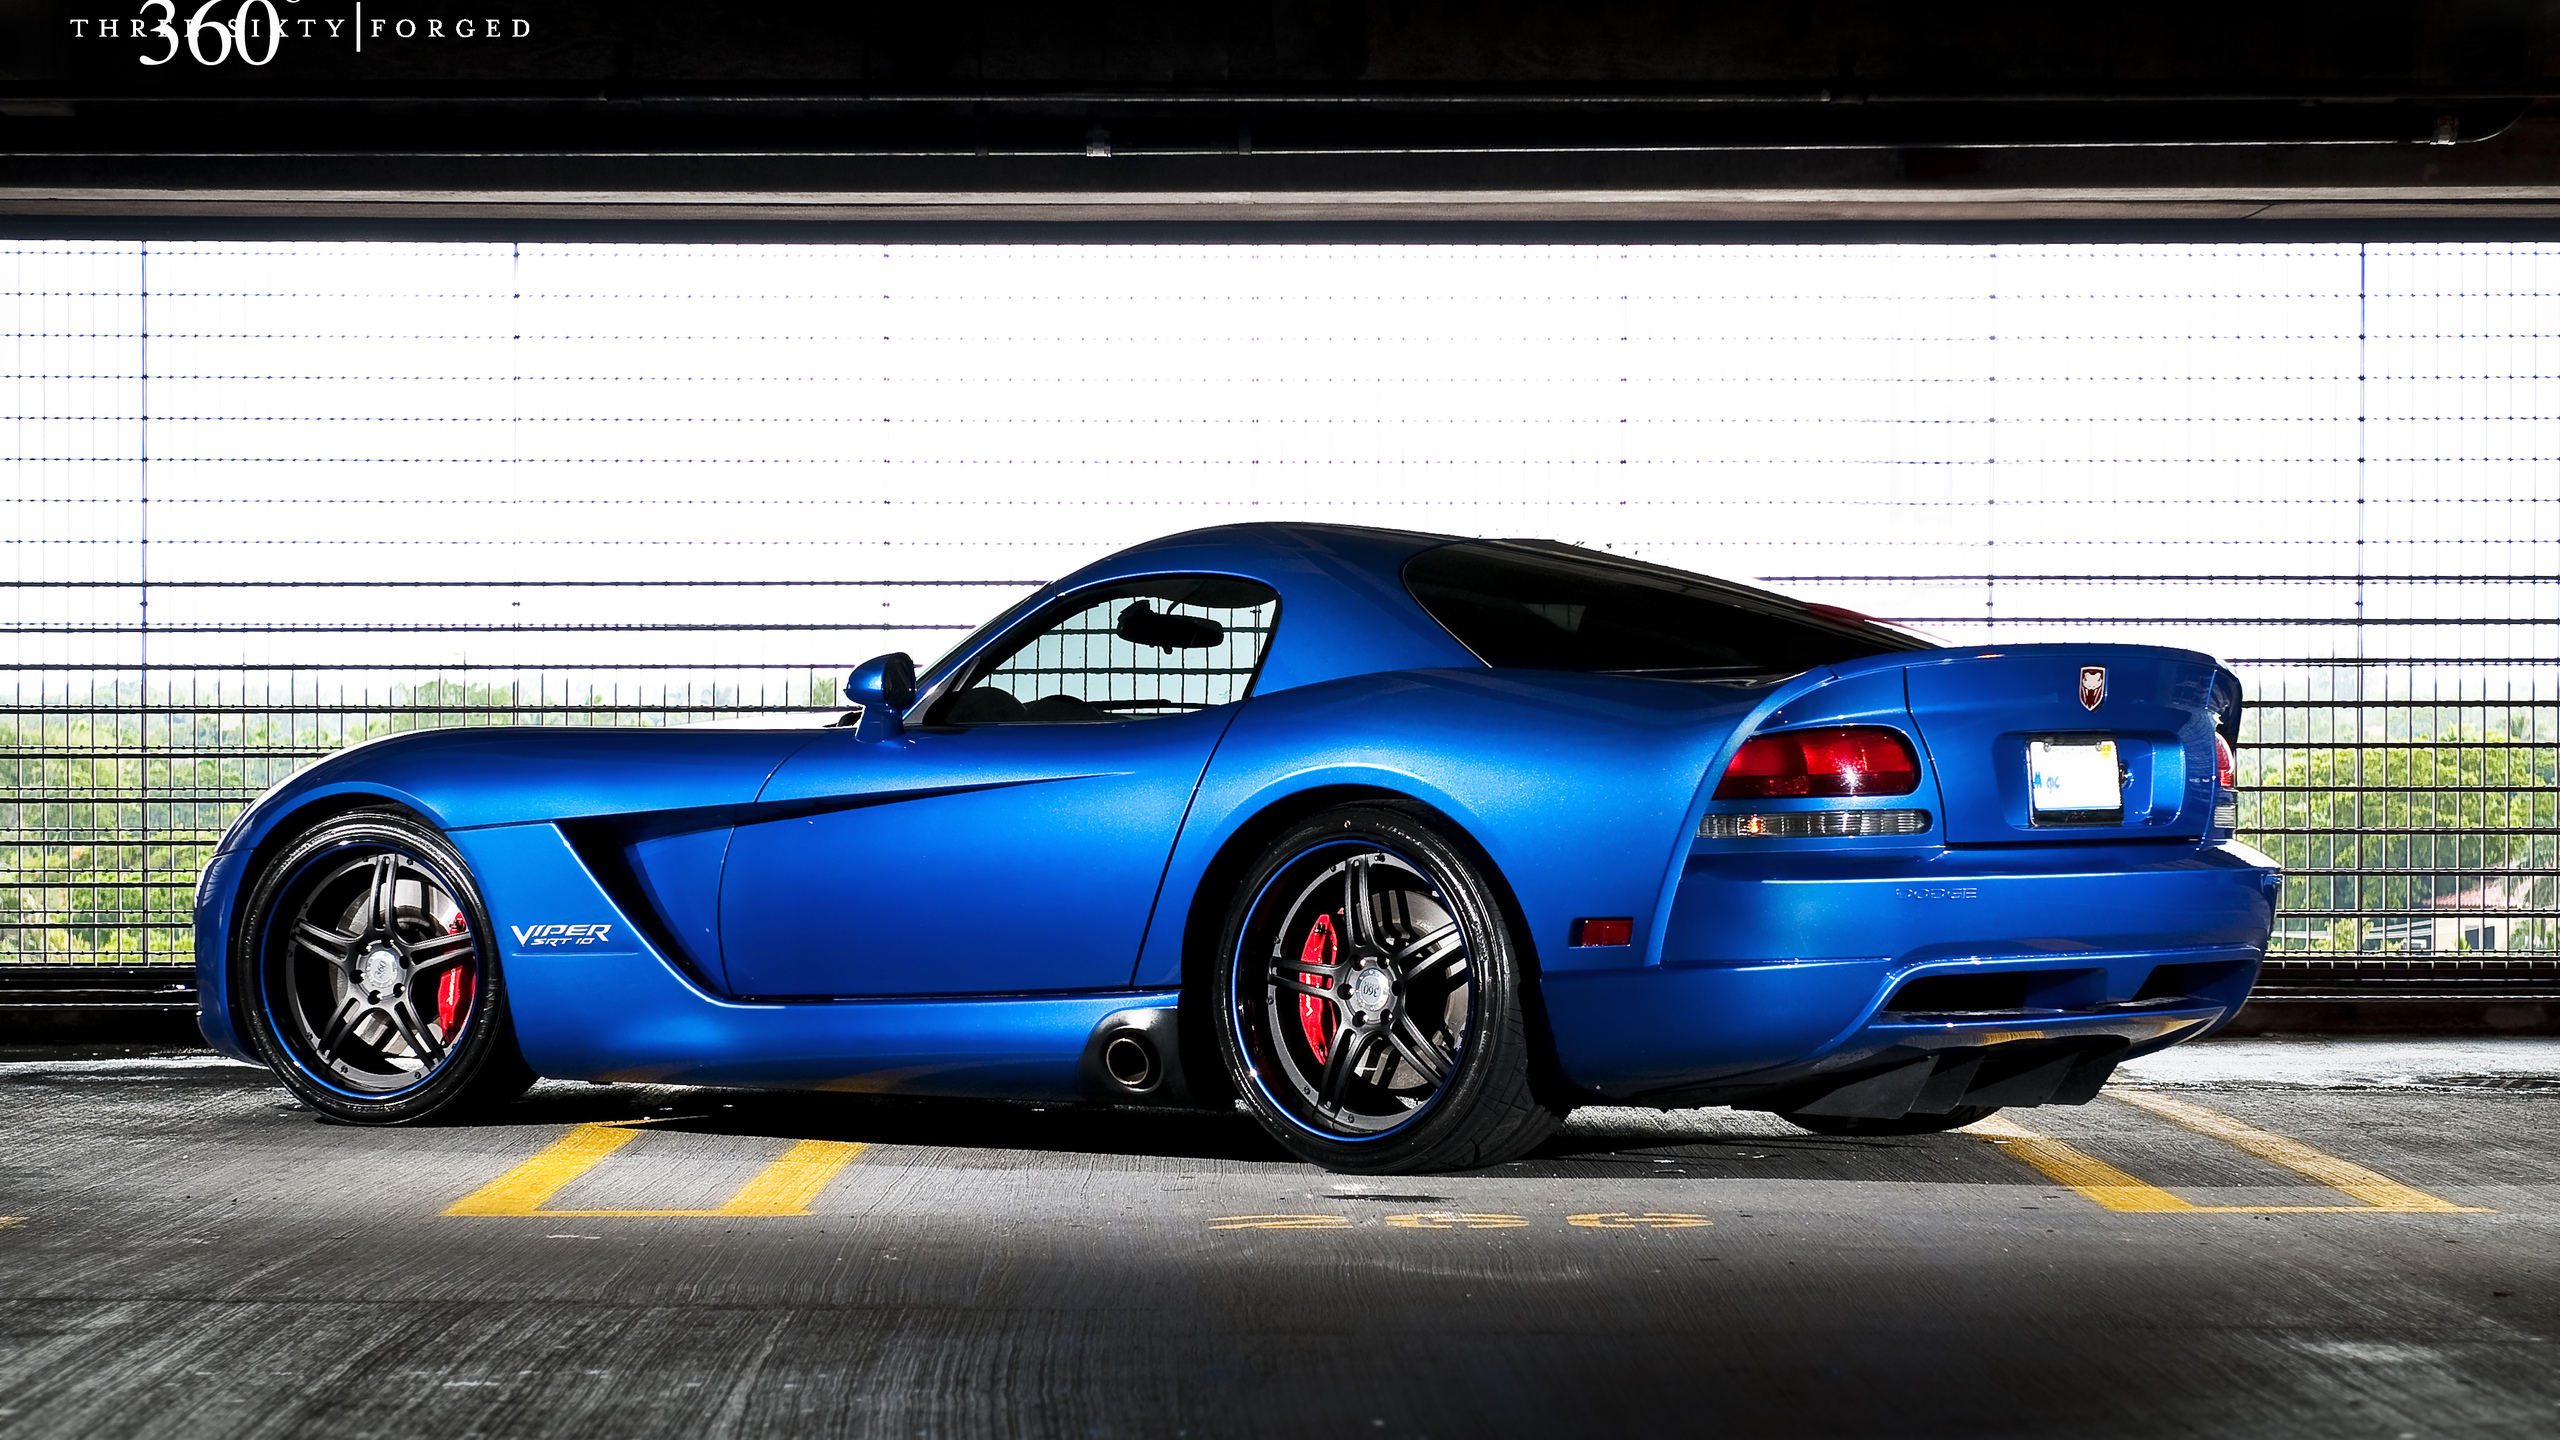 додж, синий, srt 10, dodge, парковка, 360 three sixty forged, вайпер, задняя часть, blue, viper